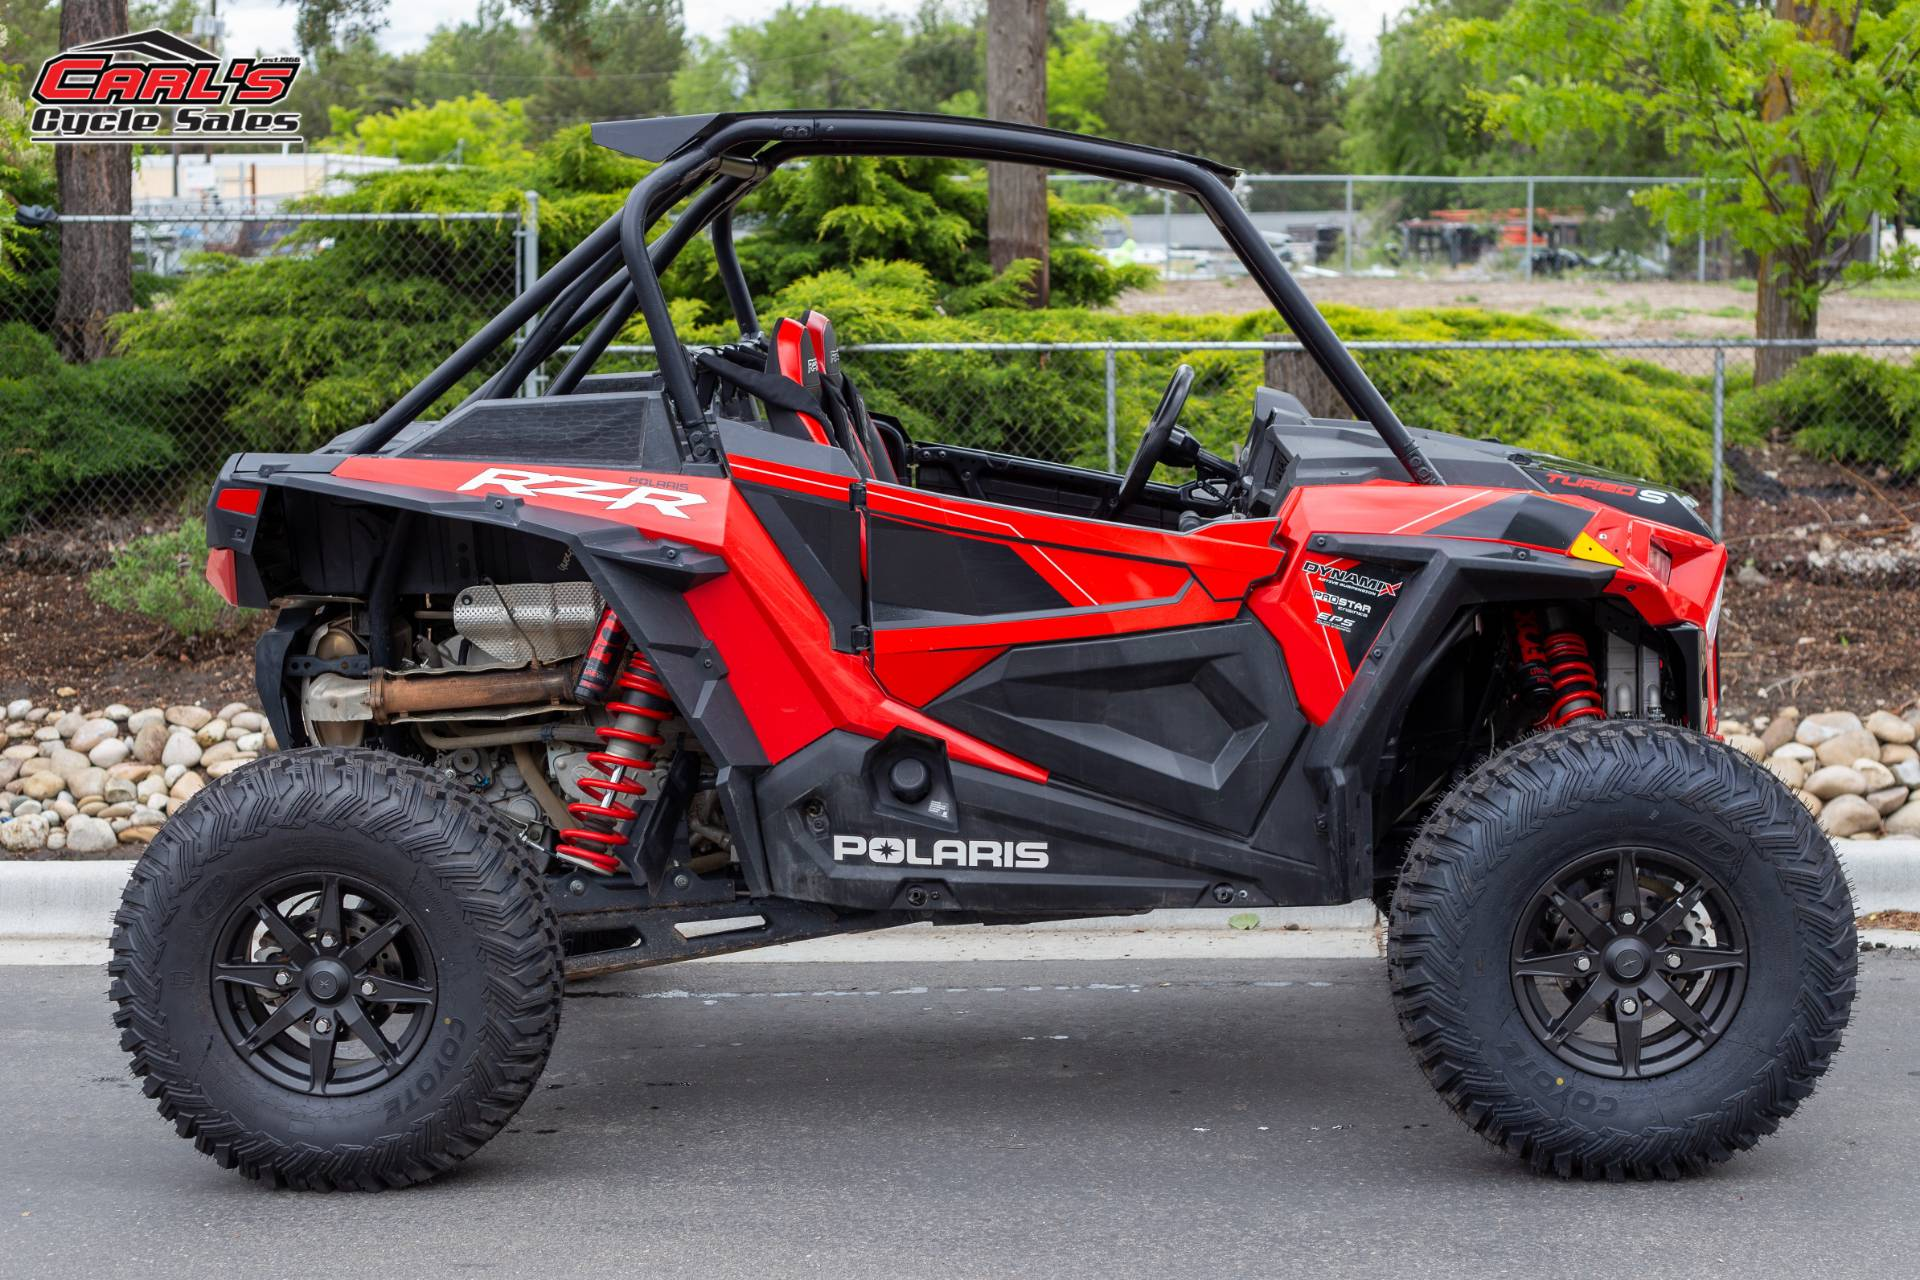 2018 Polaris RZR XP Turbo S in Boise, Idaho - Photo 6